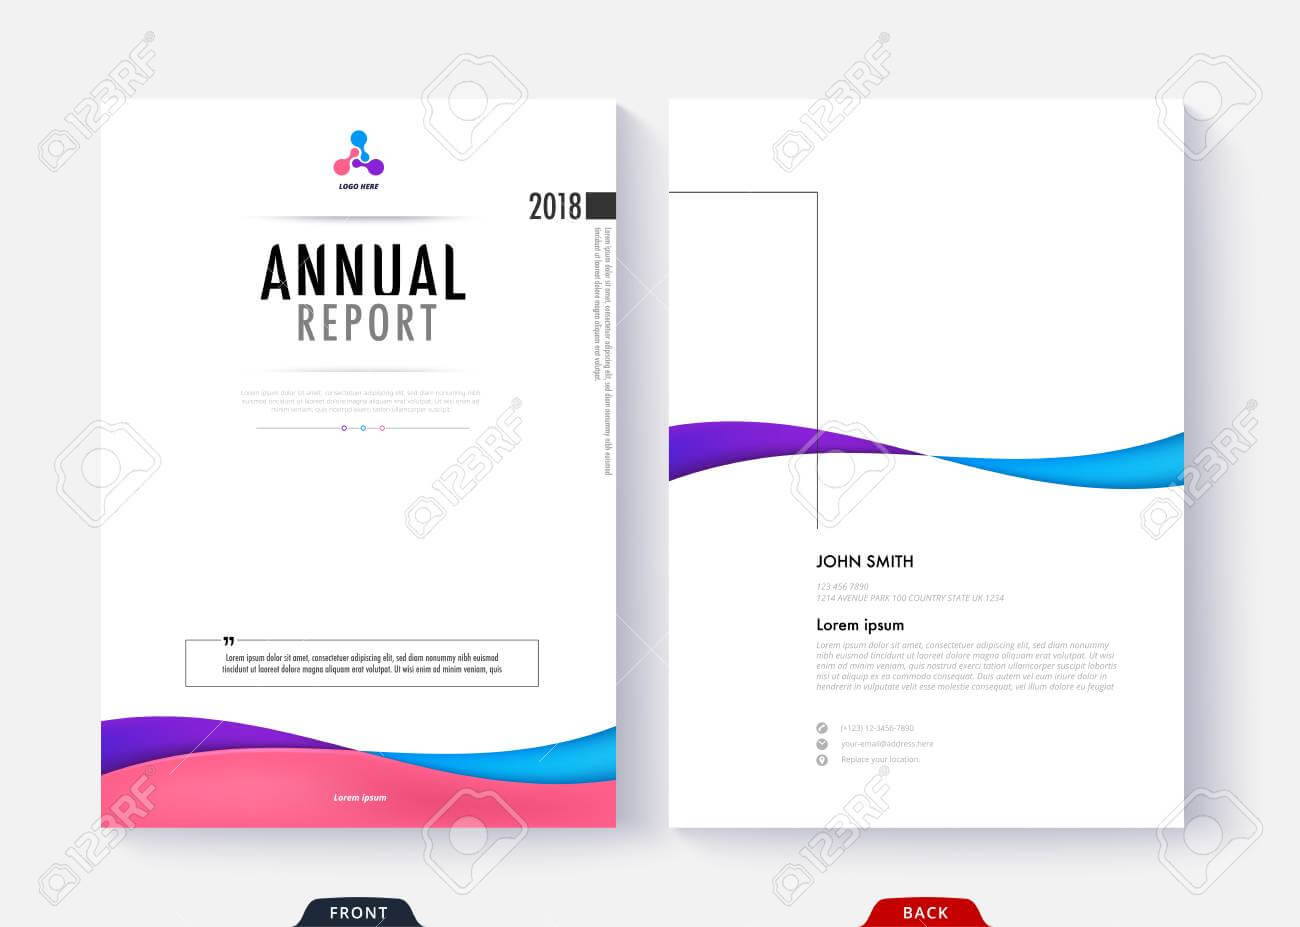 024 Report Cover Page Template Annual Design For Business Intended For Report Cover Page Template Word